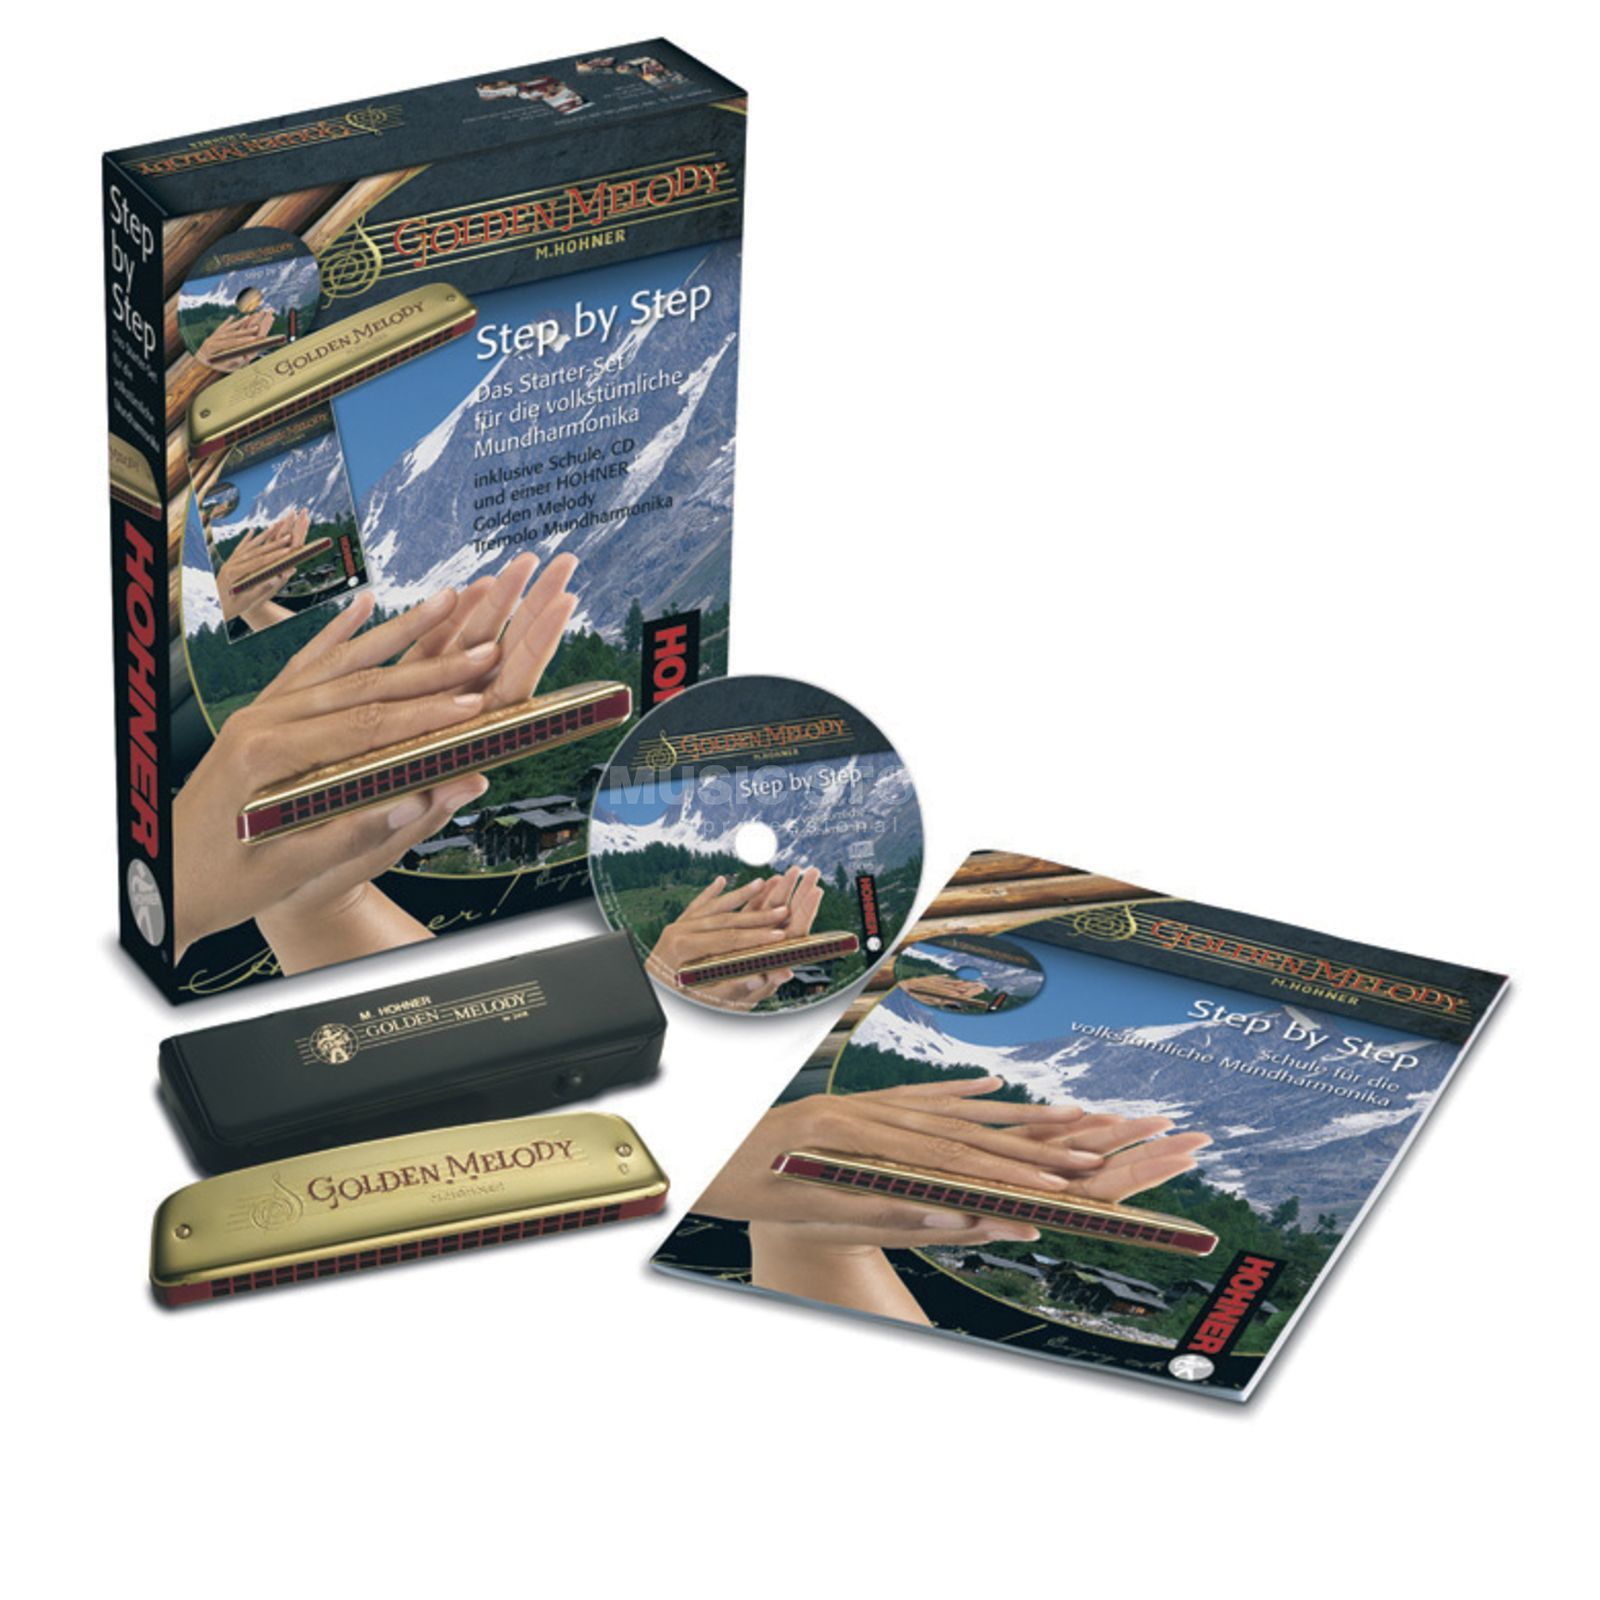 Hohner STEP BY STEP - VOLKSTÜMLICH  inc. Golden Melody, CD, Livre Image du produit